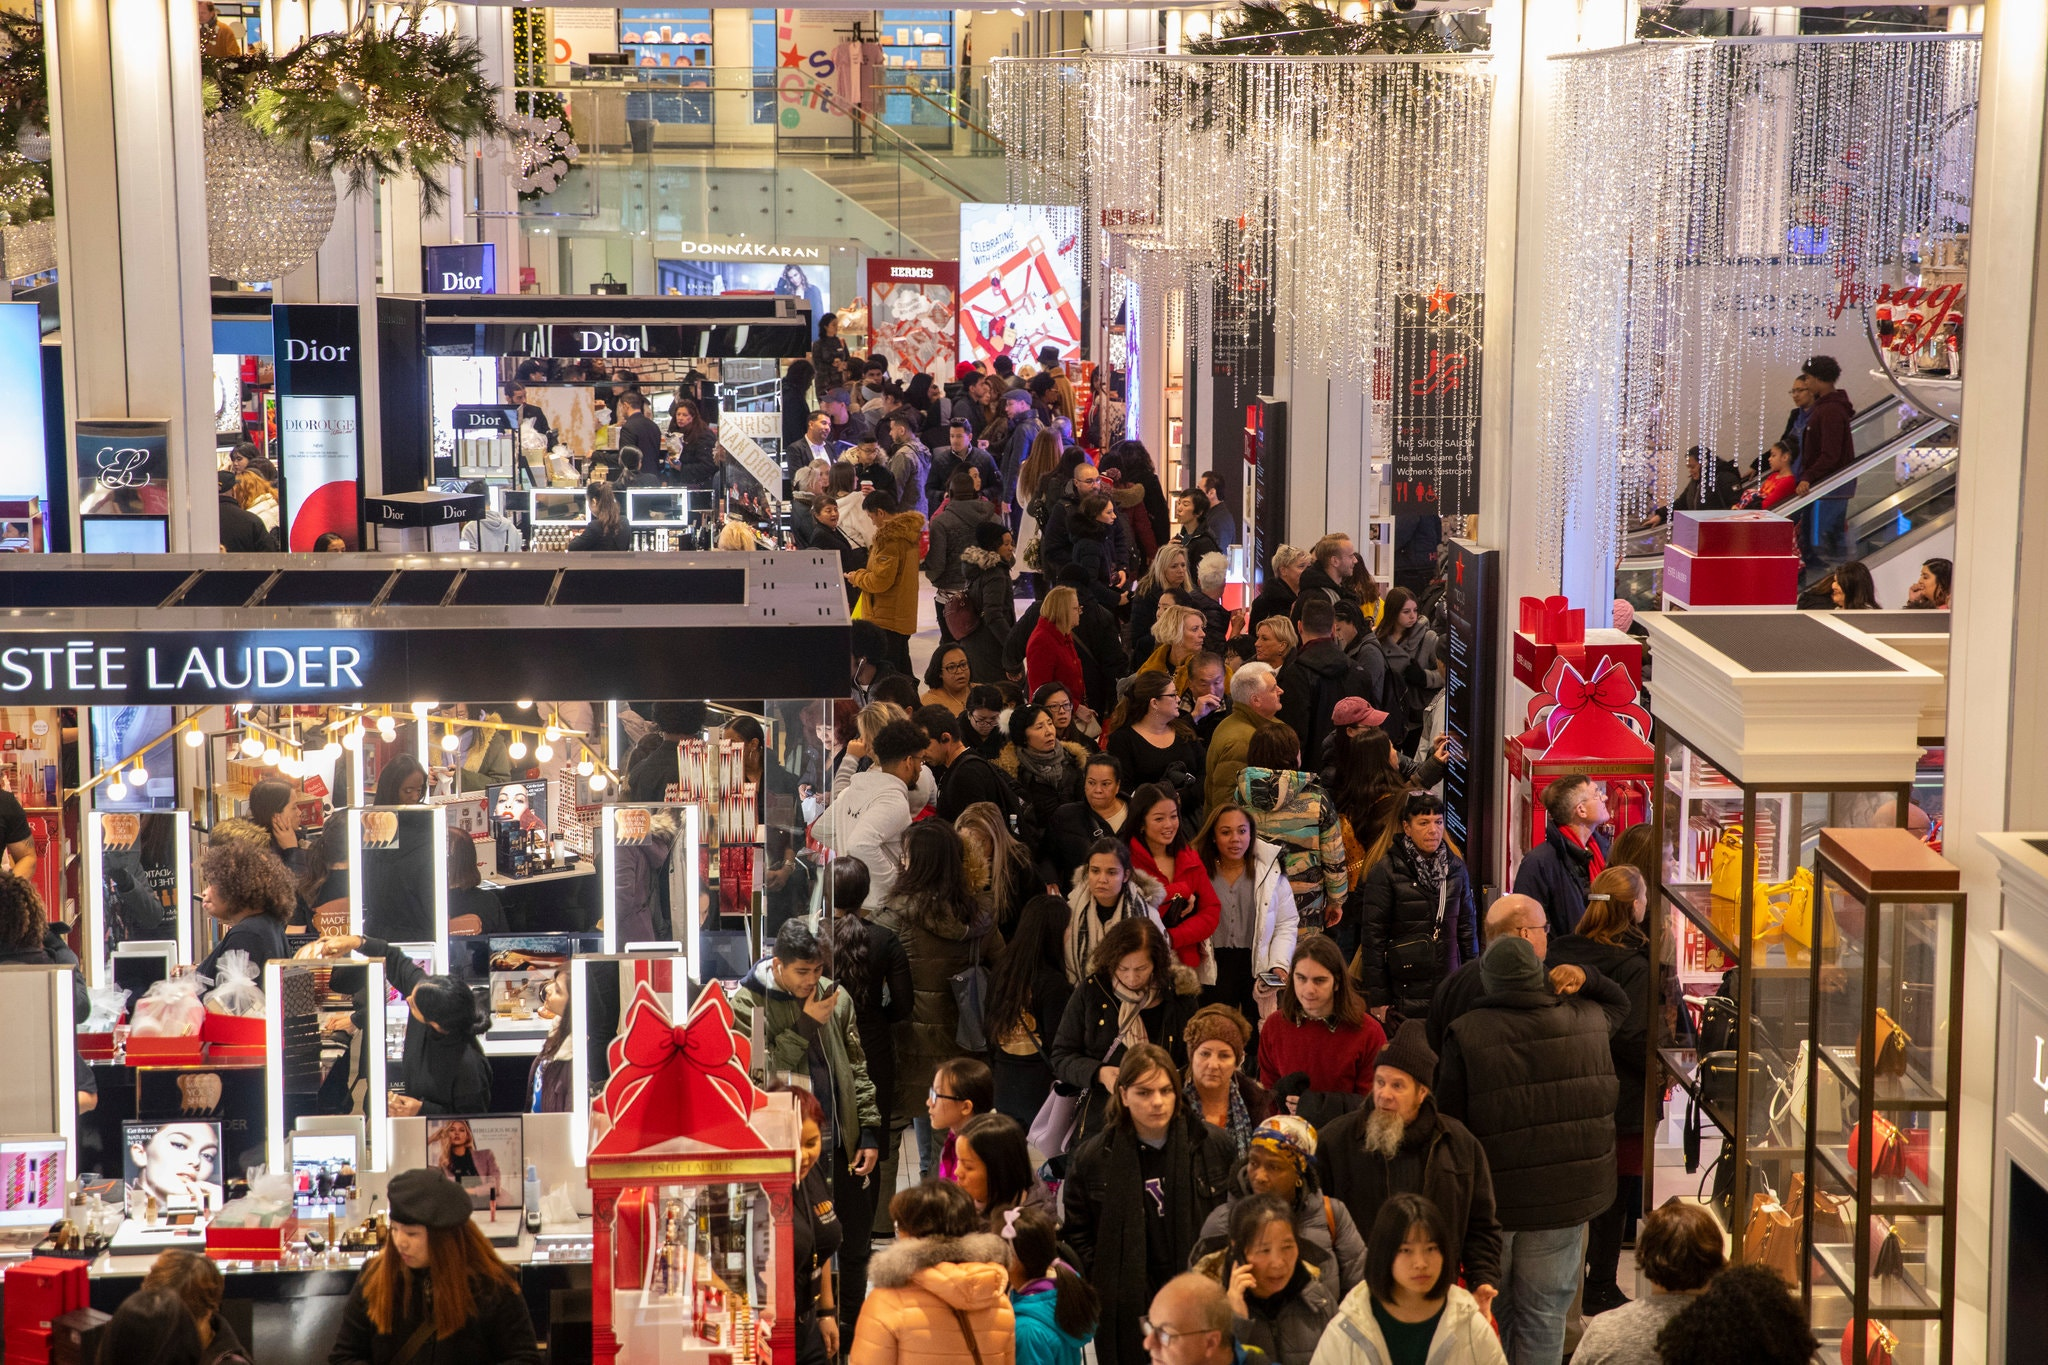 A large number of shoppers are inside of a store